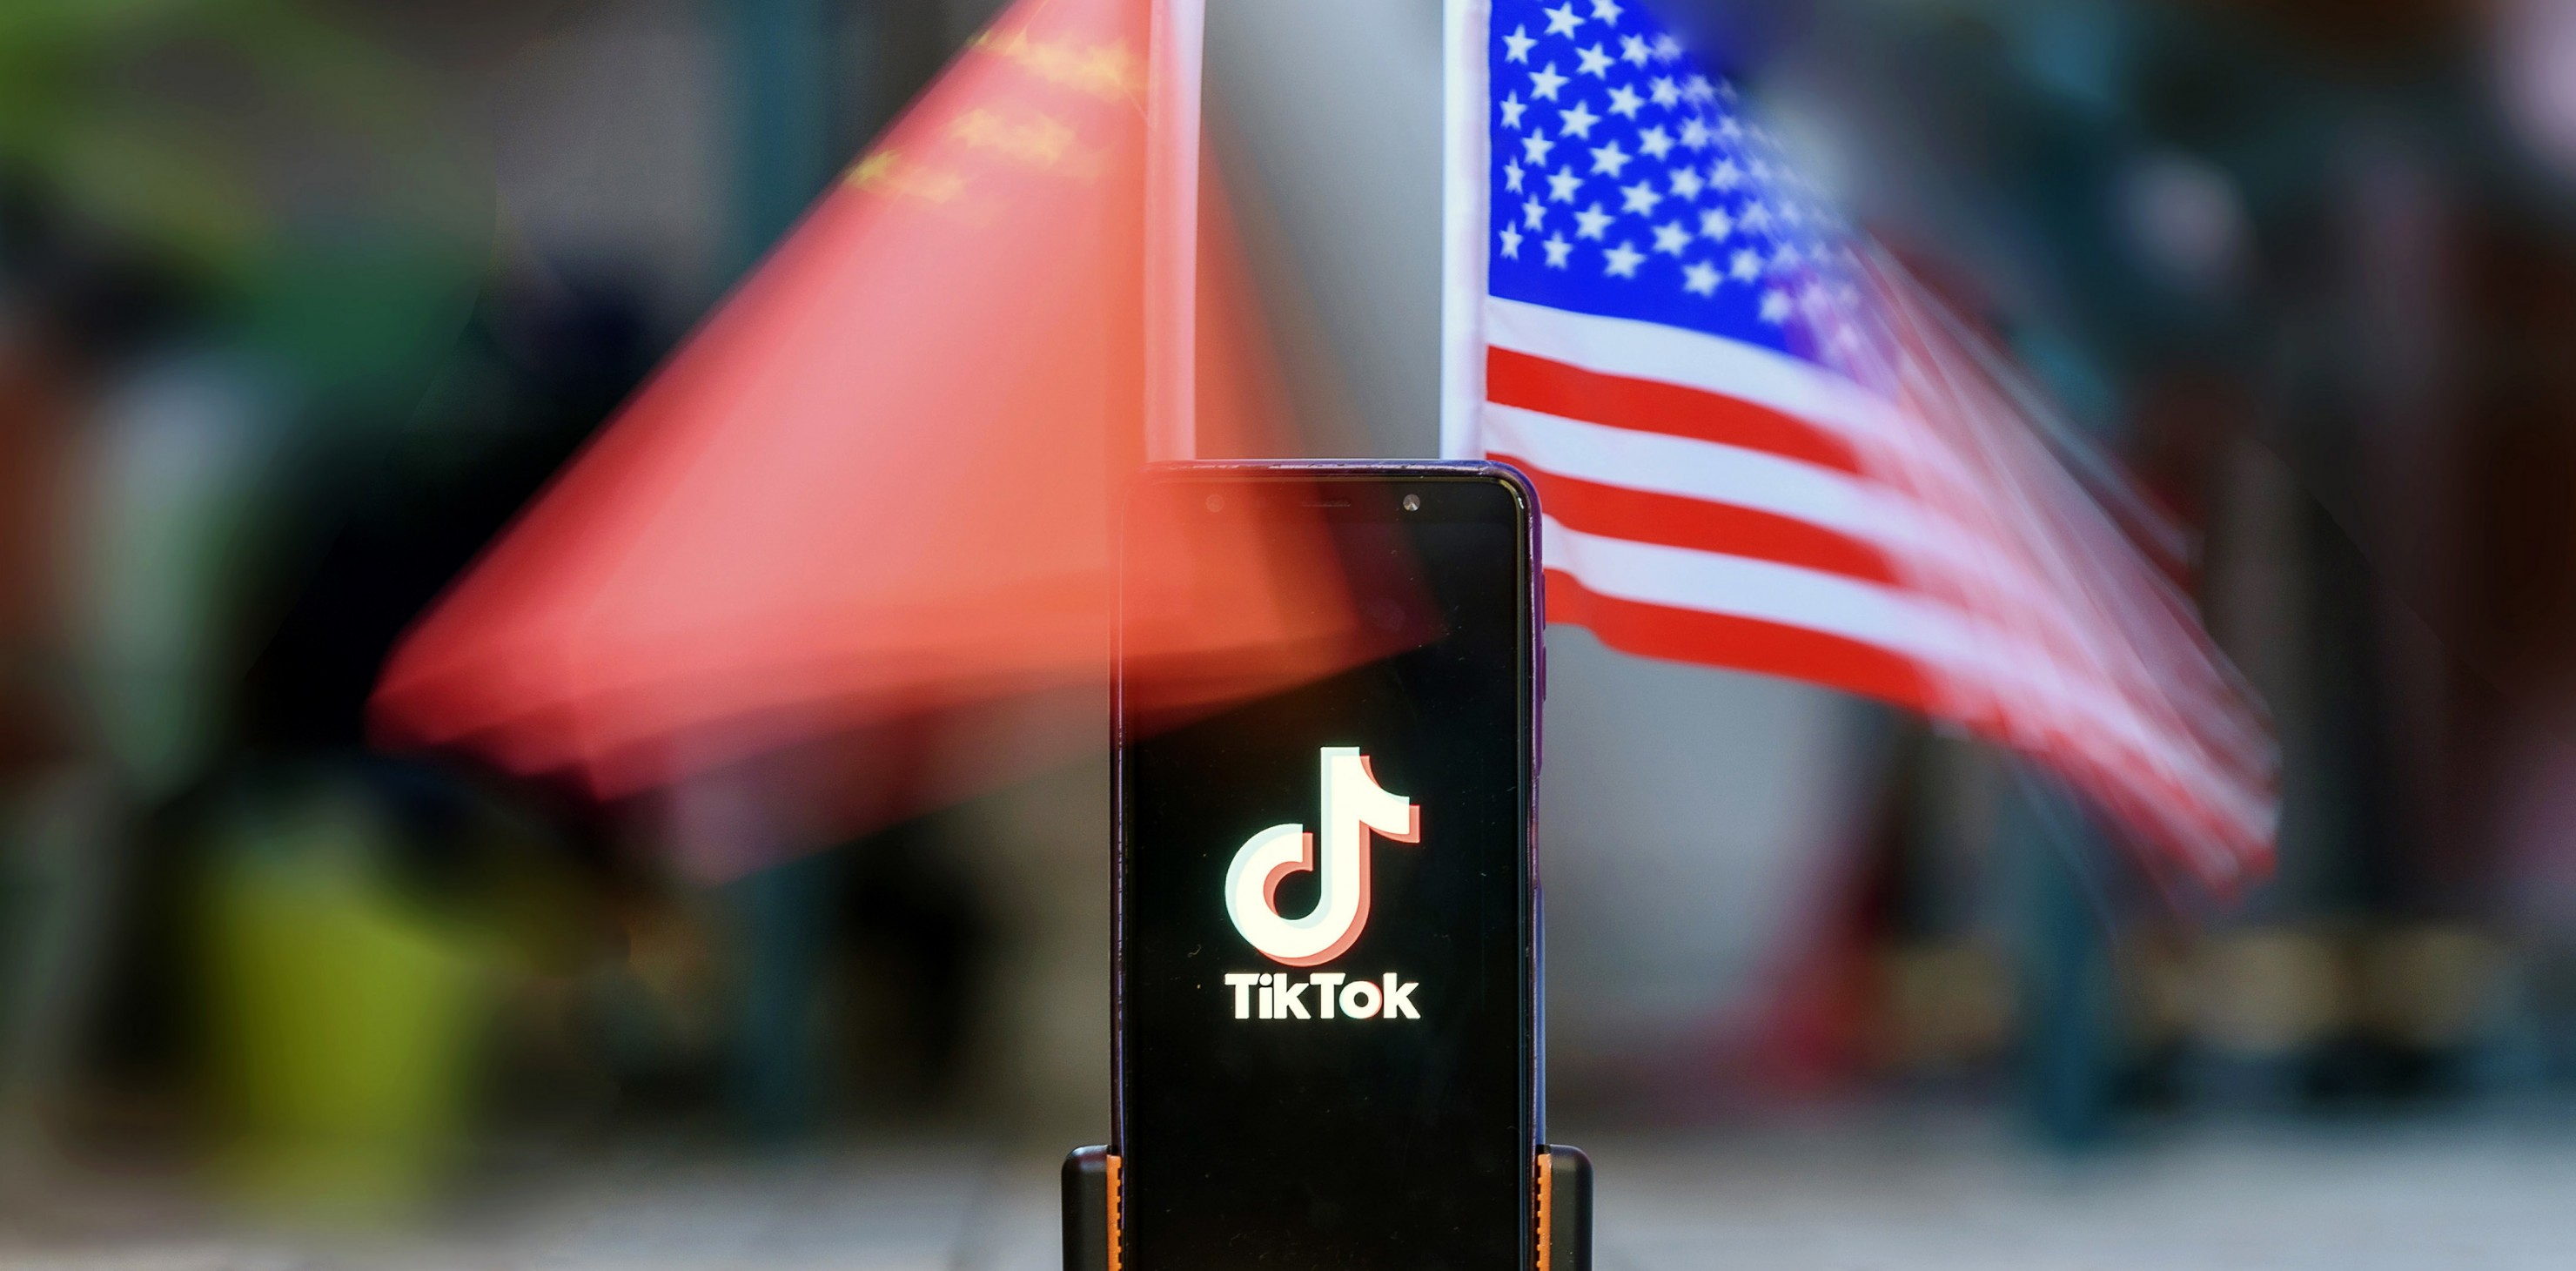 Smartphone showing the Logo of TikTok in front of US and Chinese flags